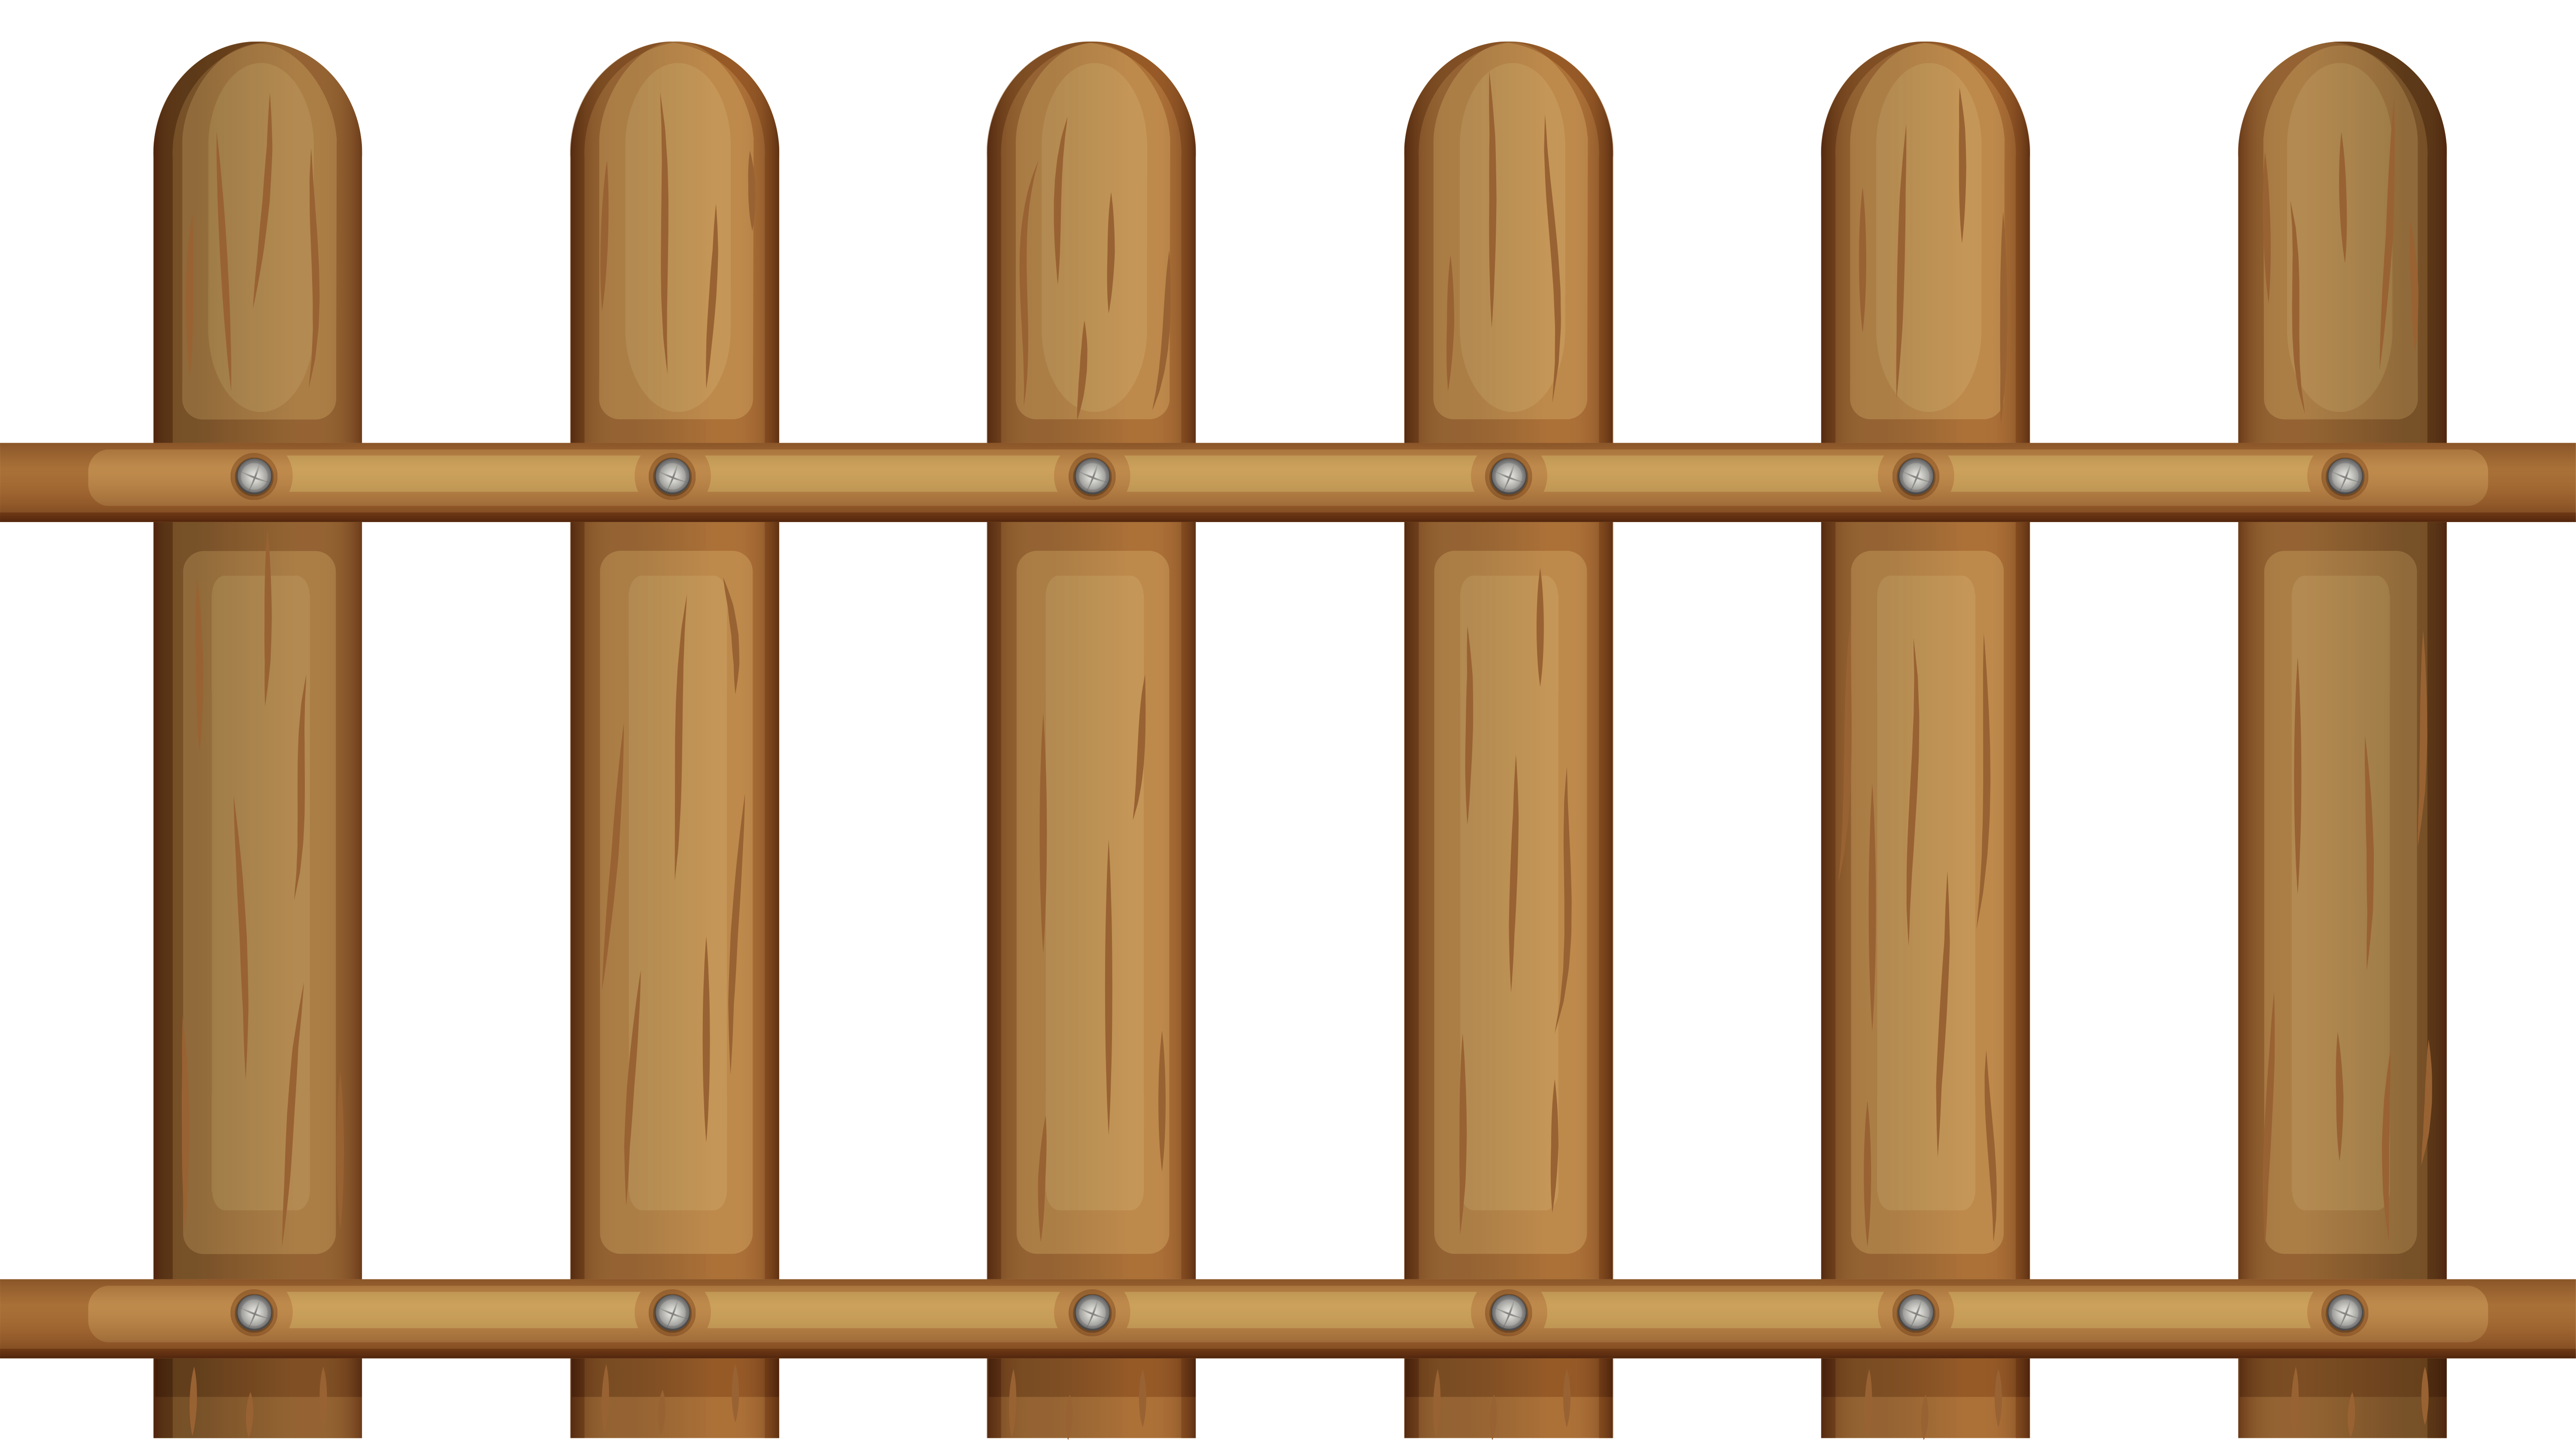 Transparent Wooden Fence PNG Clipart.